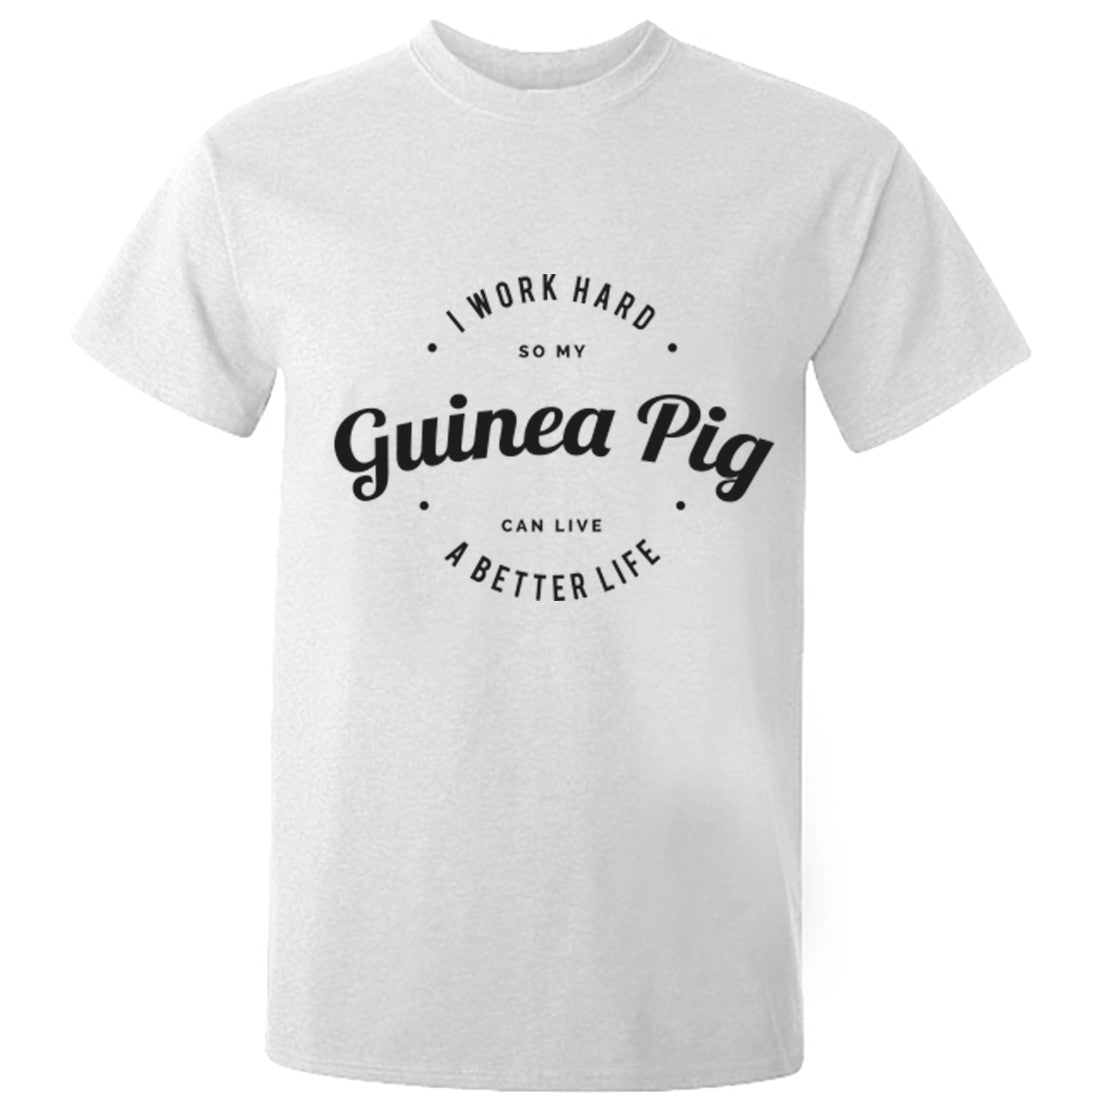 I Work Hard So My Guinea Pig Can Live A Better Life Unisex Fit T-Shirt K0436 - Illustrated Identity Ltd.